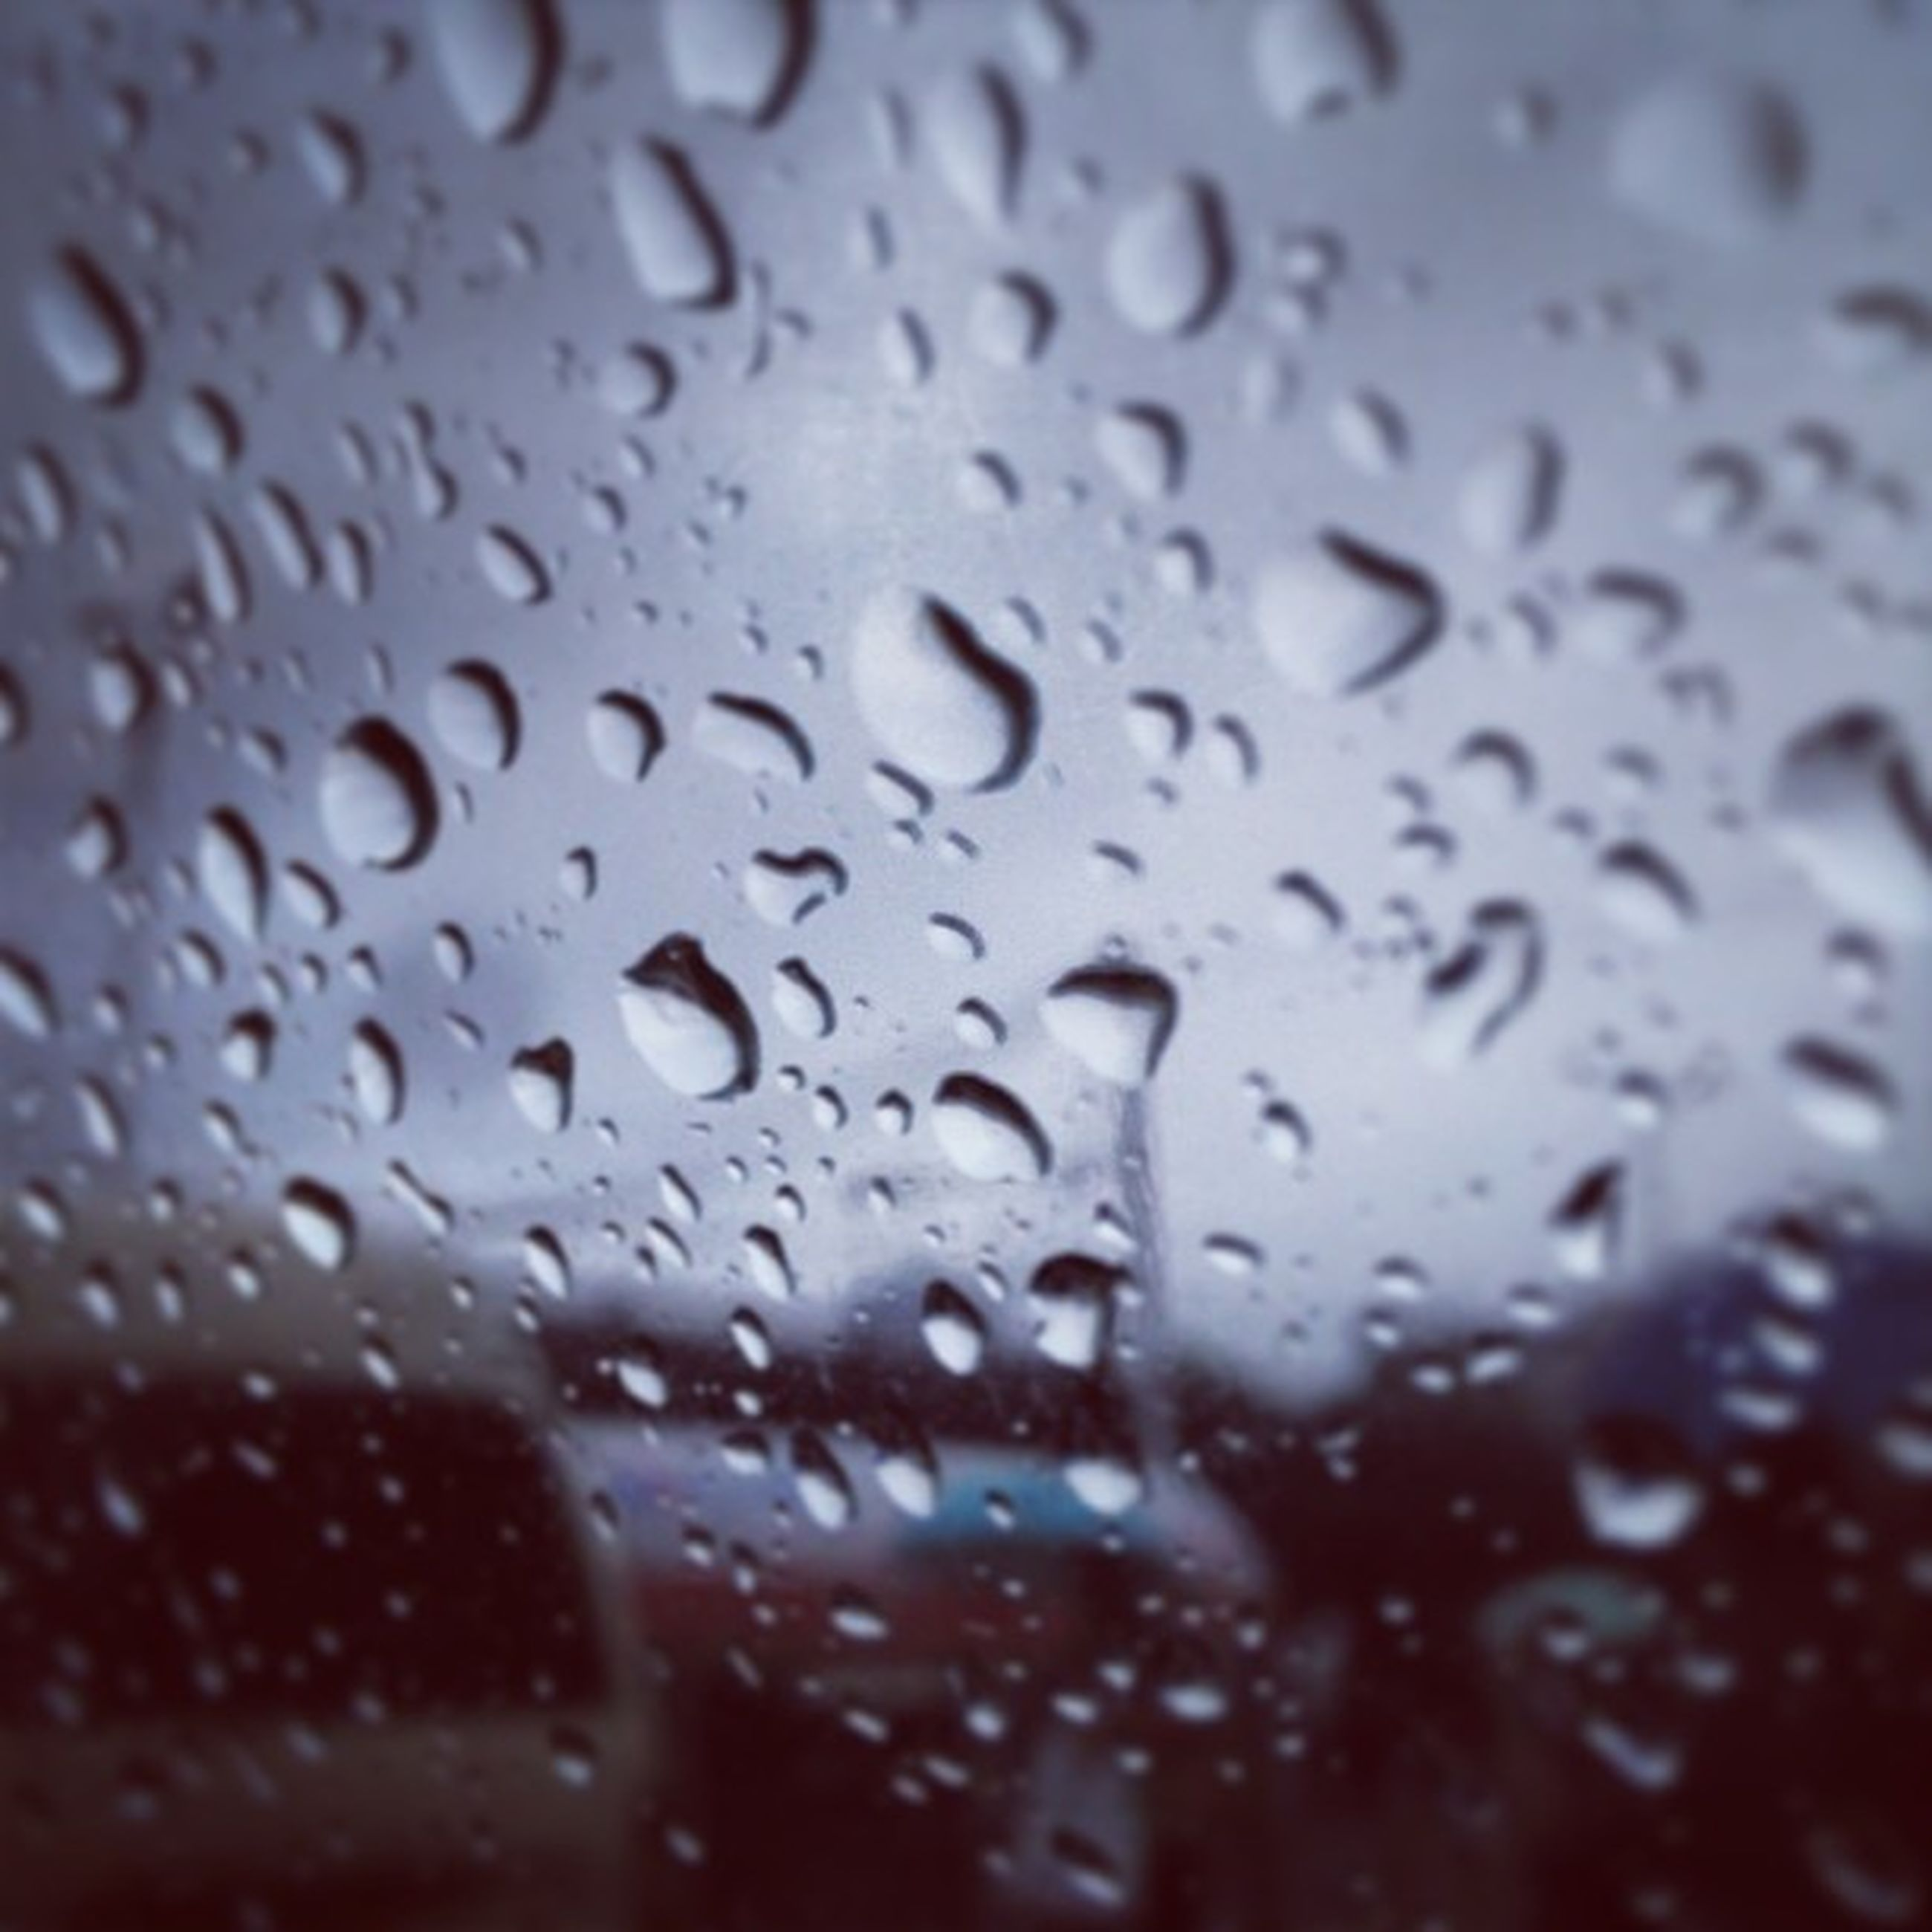 drop, wet, window, rain, water, transparent, indoors, raindrop, full frame, backgrounds, glass - material, weather, season, close-up, focus on foreground, glass, sky, no people, transportation, droplet